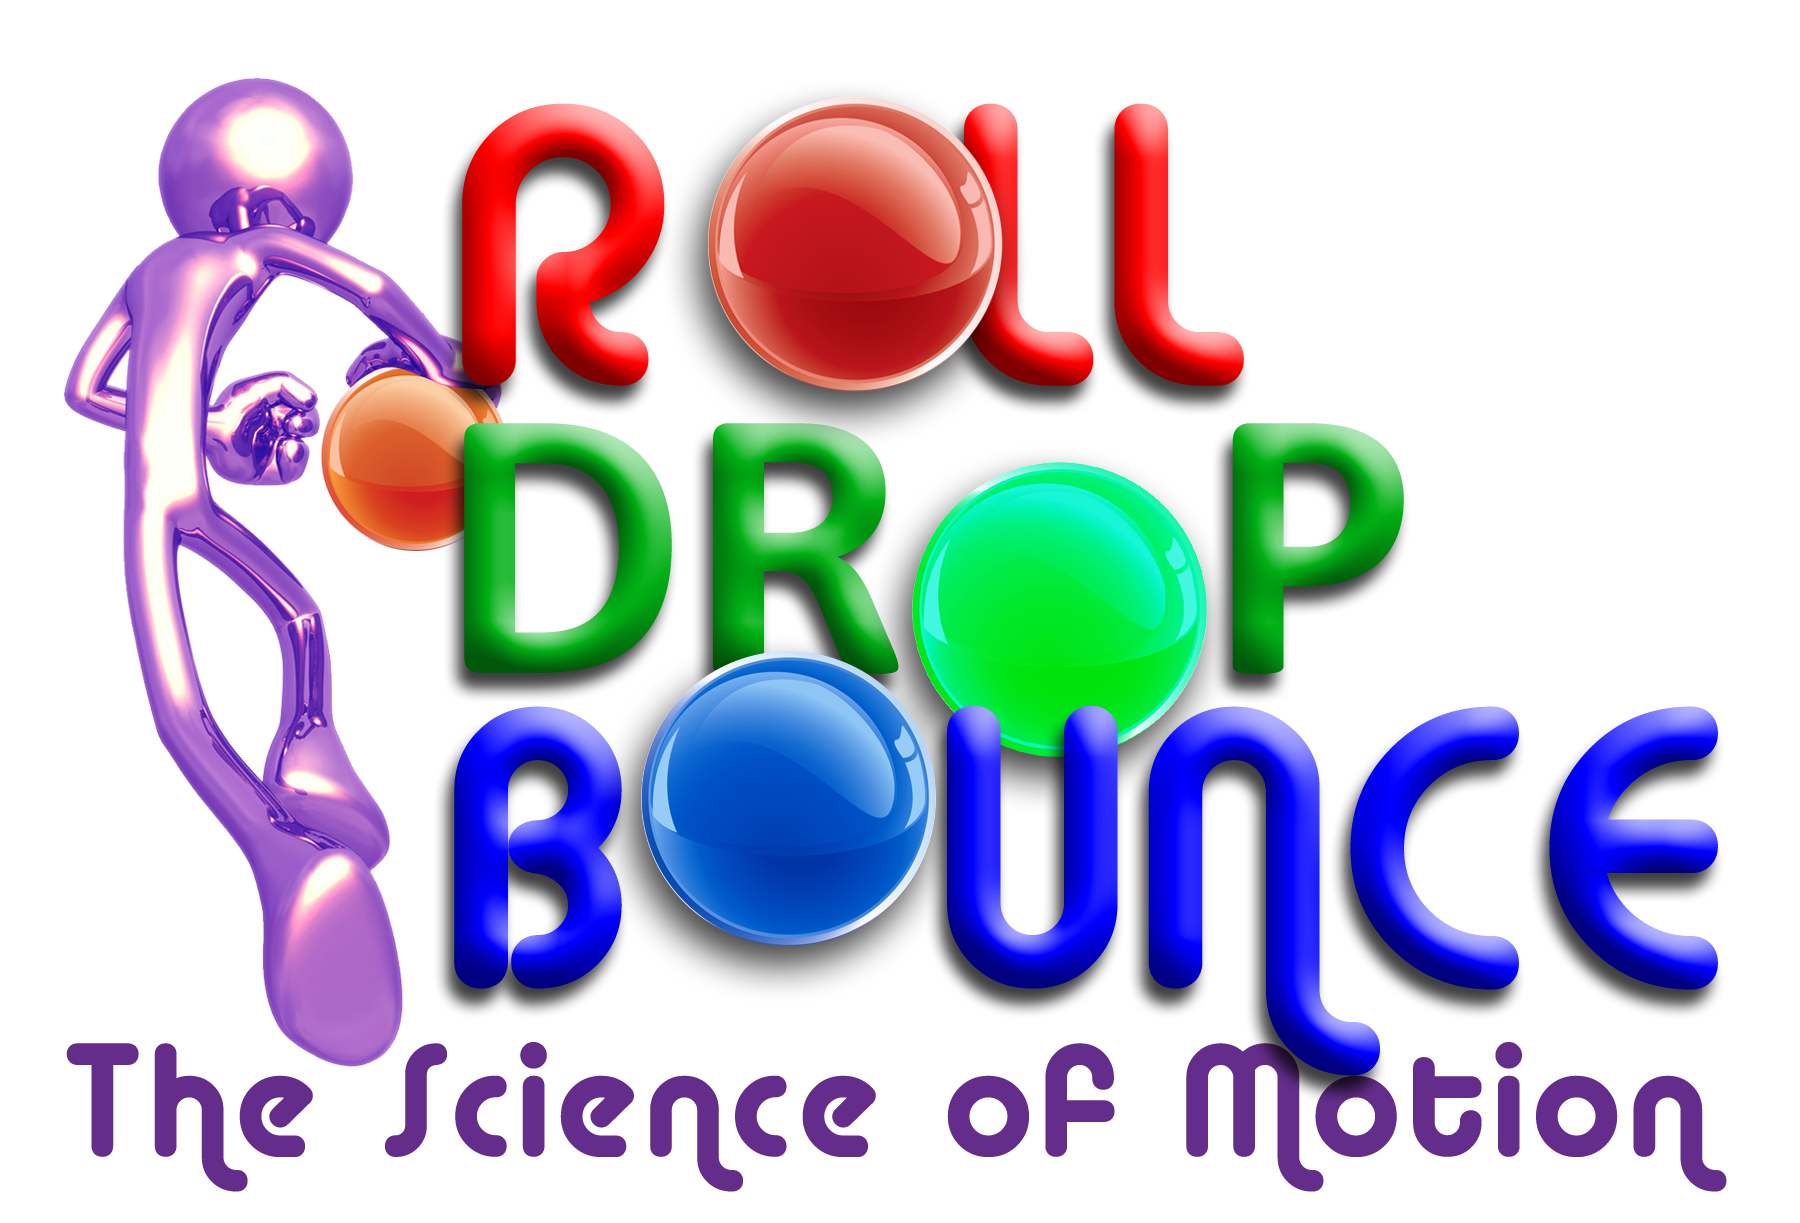 Roll Drop Bounce logo